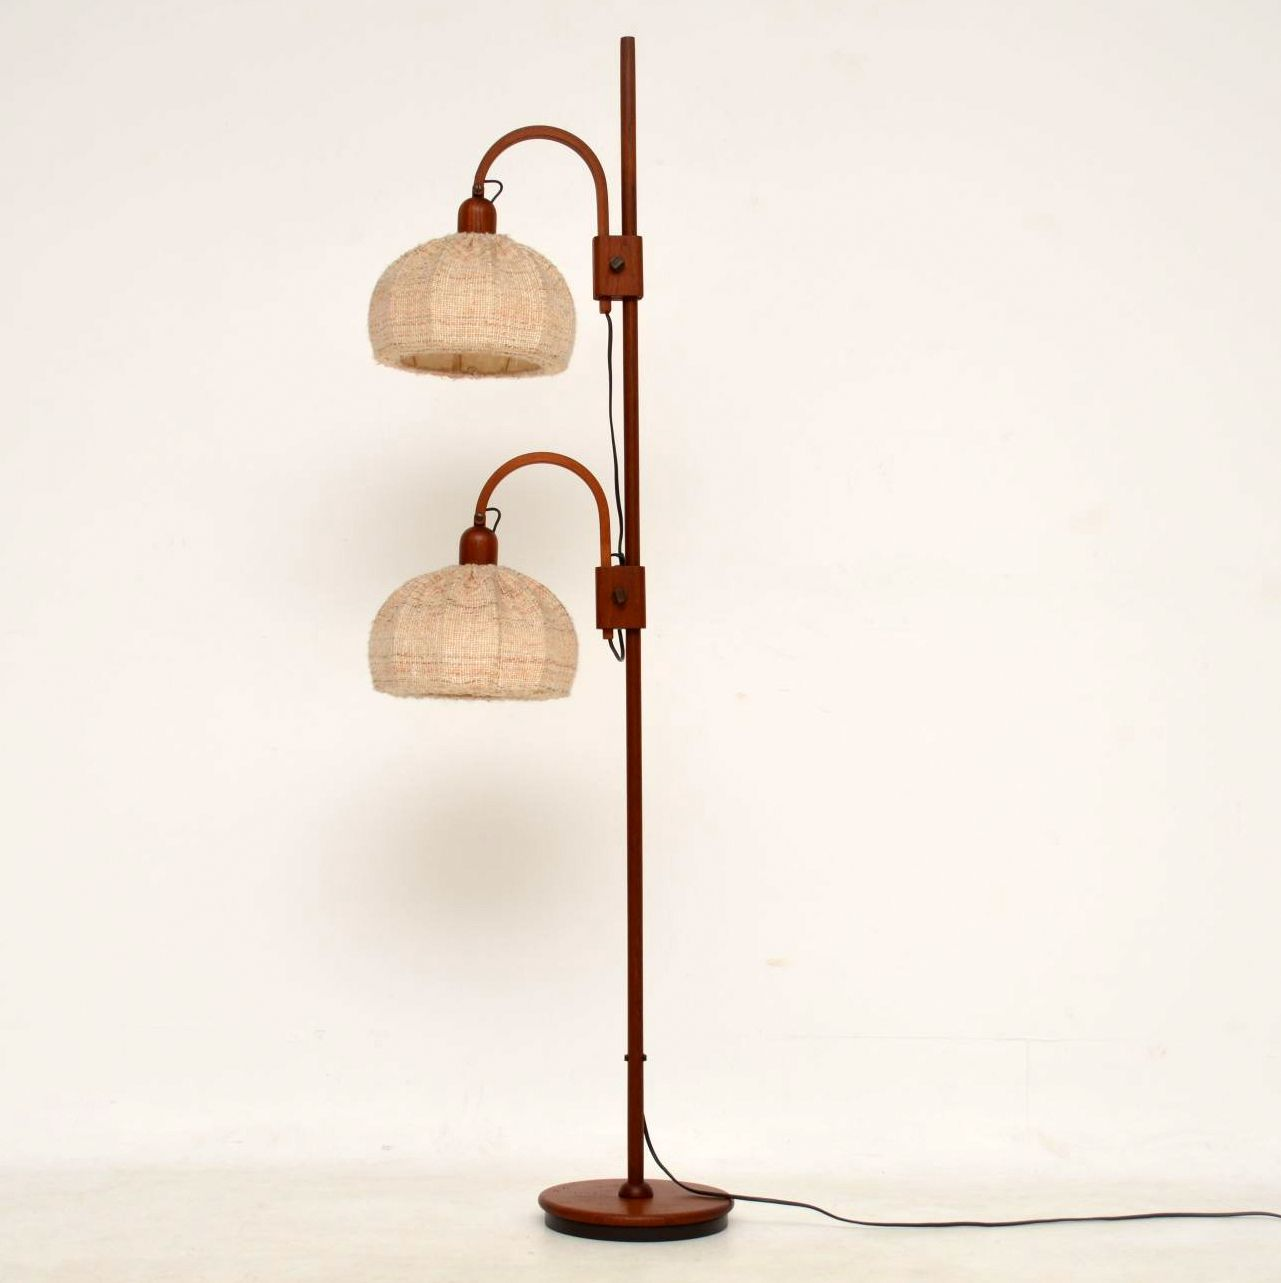 Image of: 1960 S Danish Teak Vintage Floor Lamp Interior Boutiques Antiques For Sale And Mid Century Modern Furniture French Furniture Antique Lighting Retro Furniture And Danish Furniture